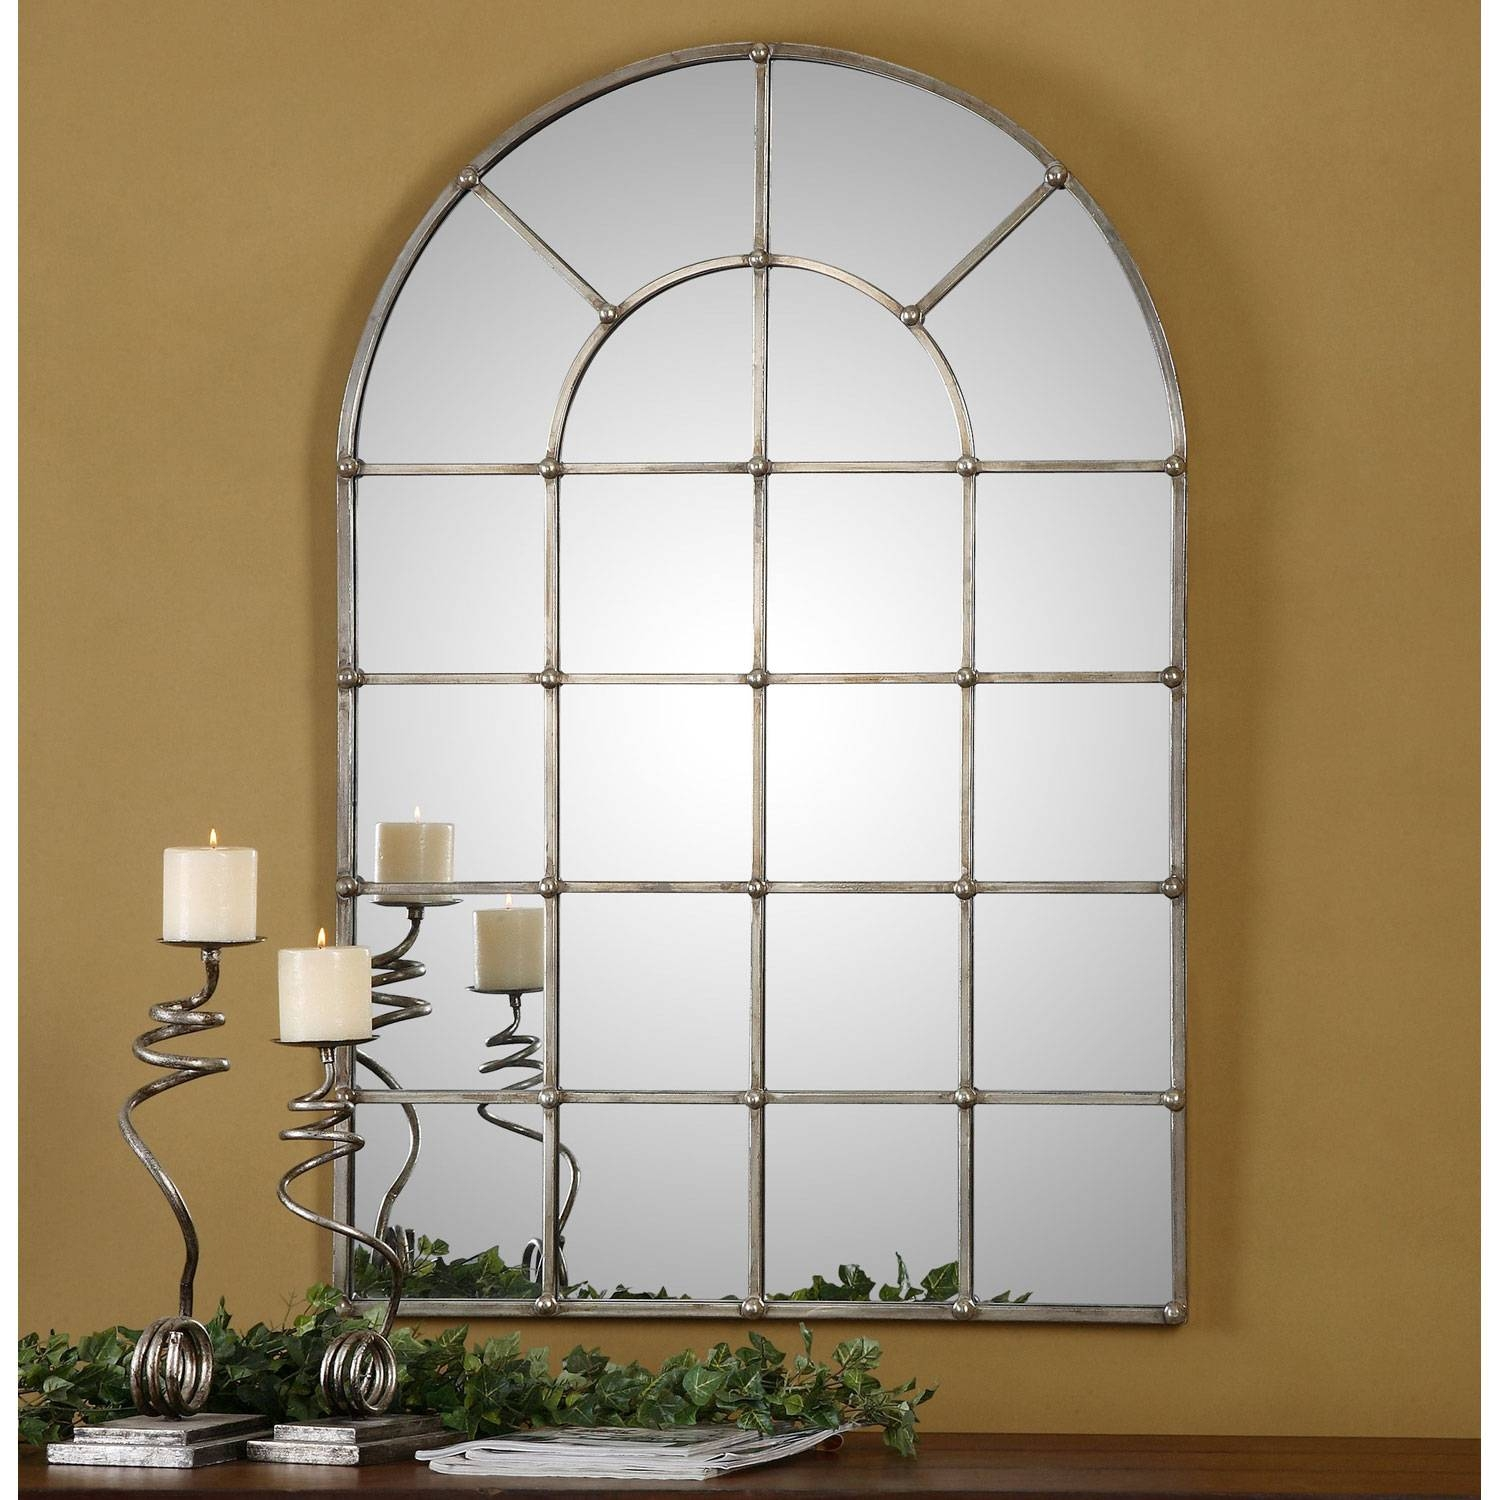 Barwell Forged Metal With Oxidized Plated Silver Arch Window with regard to Window Mirrors (Image 6 of 15)